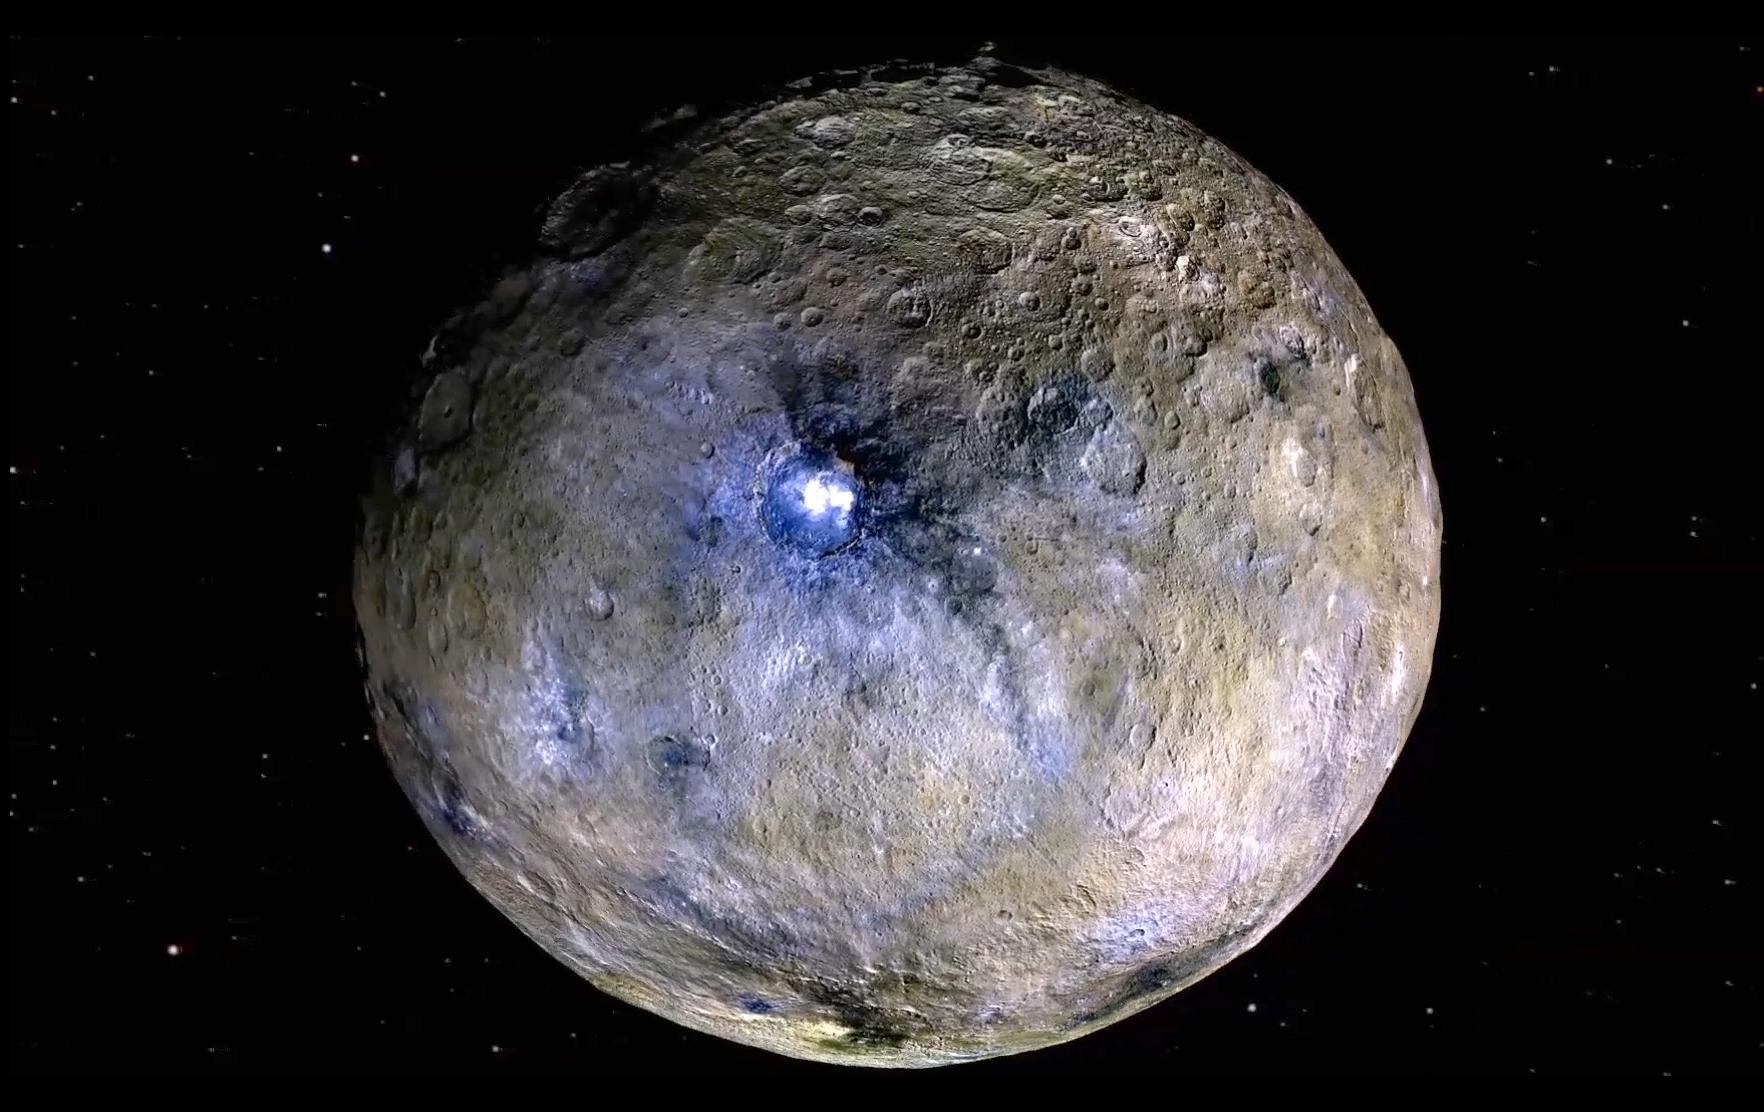 Full disk view of Ceres